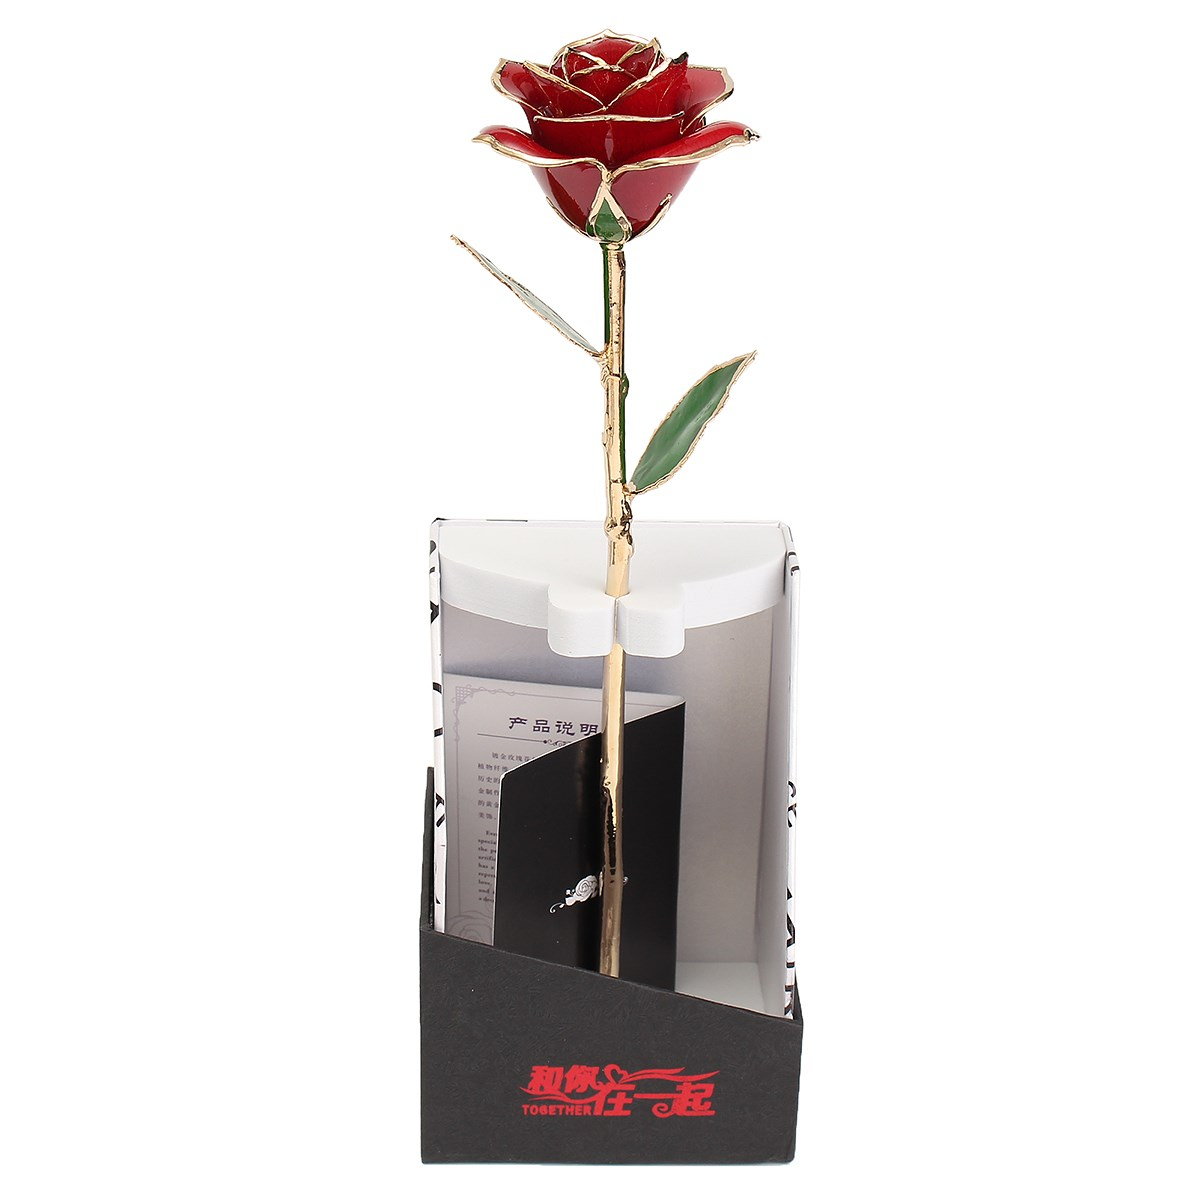 Genuine 24k rose flower dipped trim long stem rose flower glass genuine 24k rose flower dipped trim long stem rose flower glass valentine mothers day foil home decoration romantic in artificial dried flowers from home izmirmasajfo